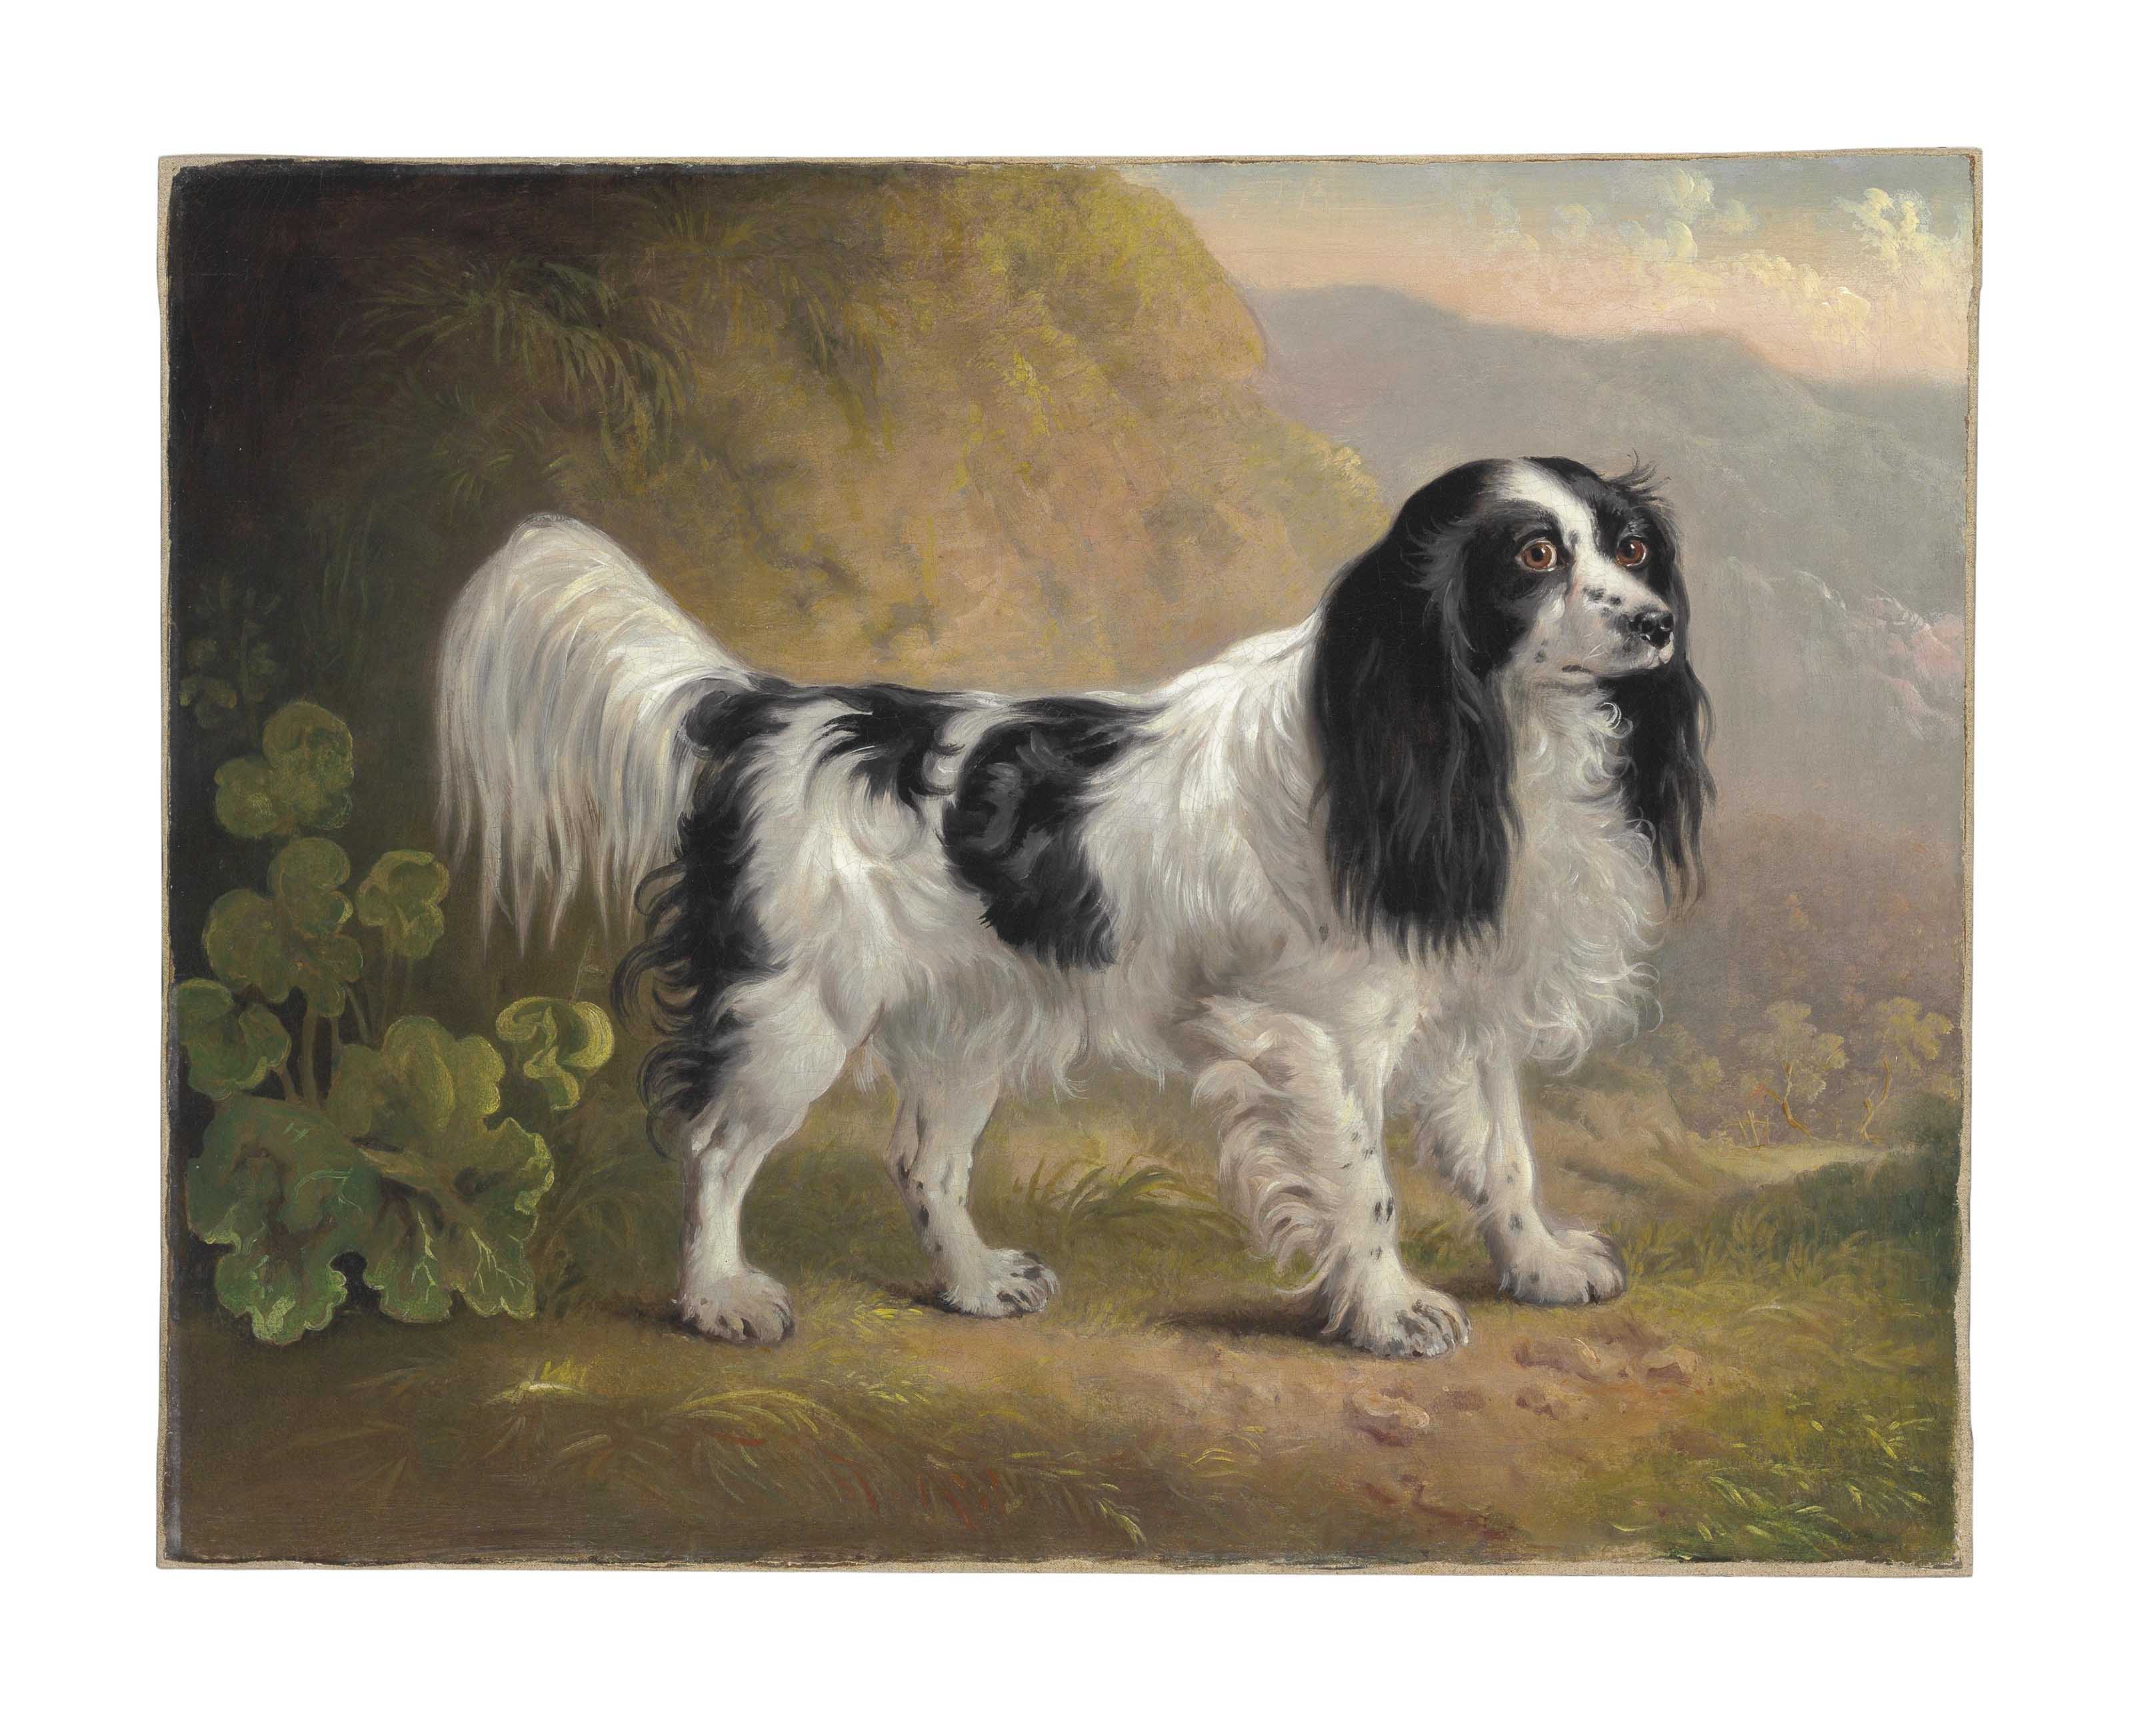 A Black and White English Springer Spaniel in a Landscape